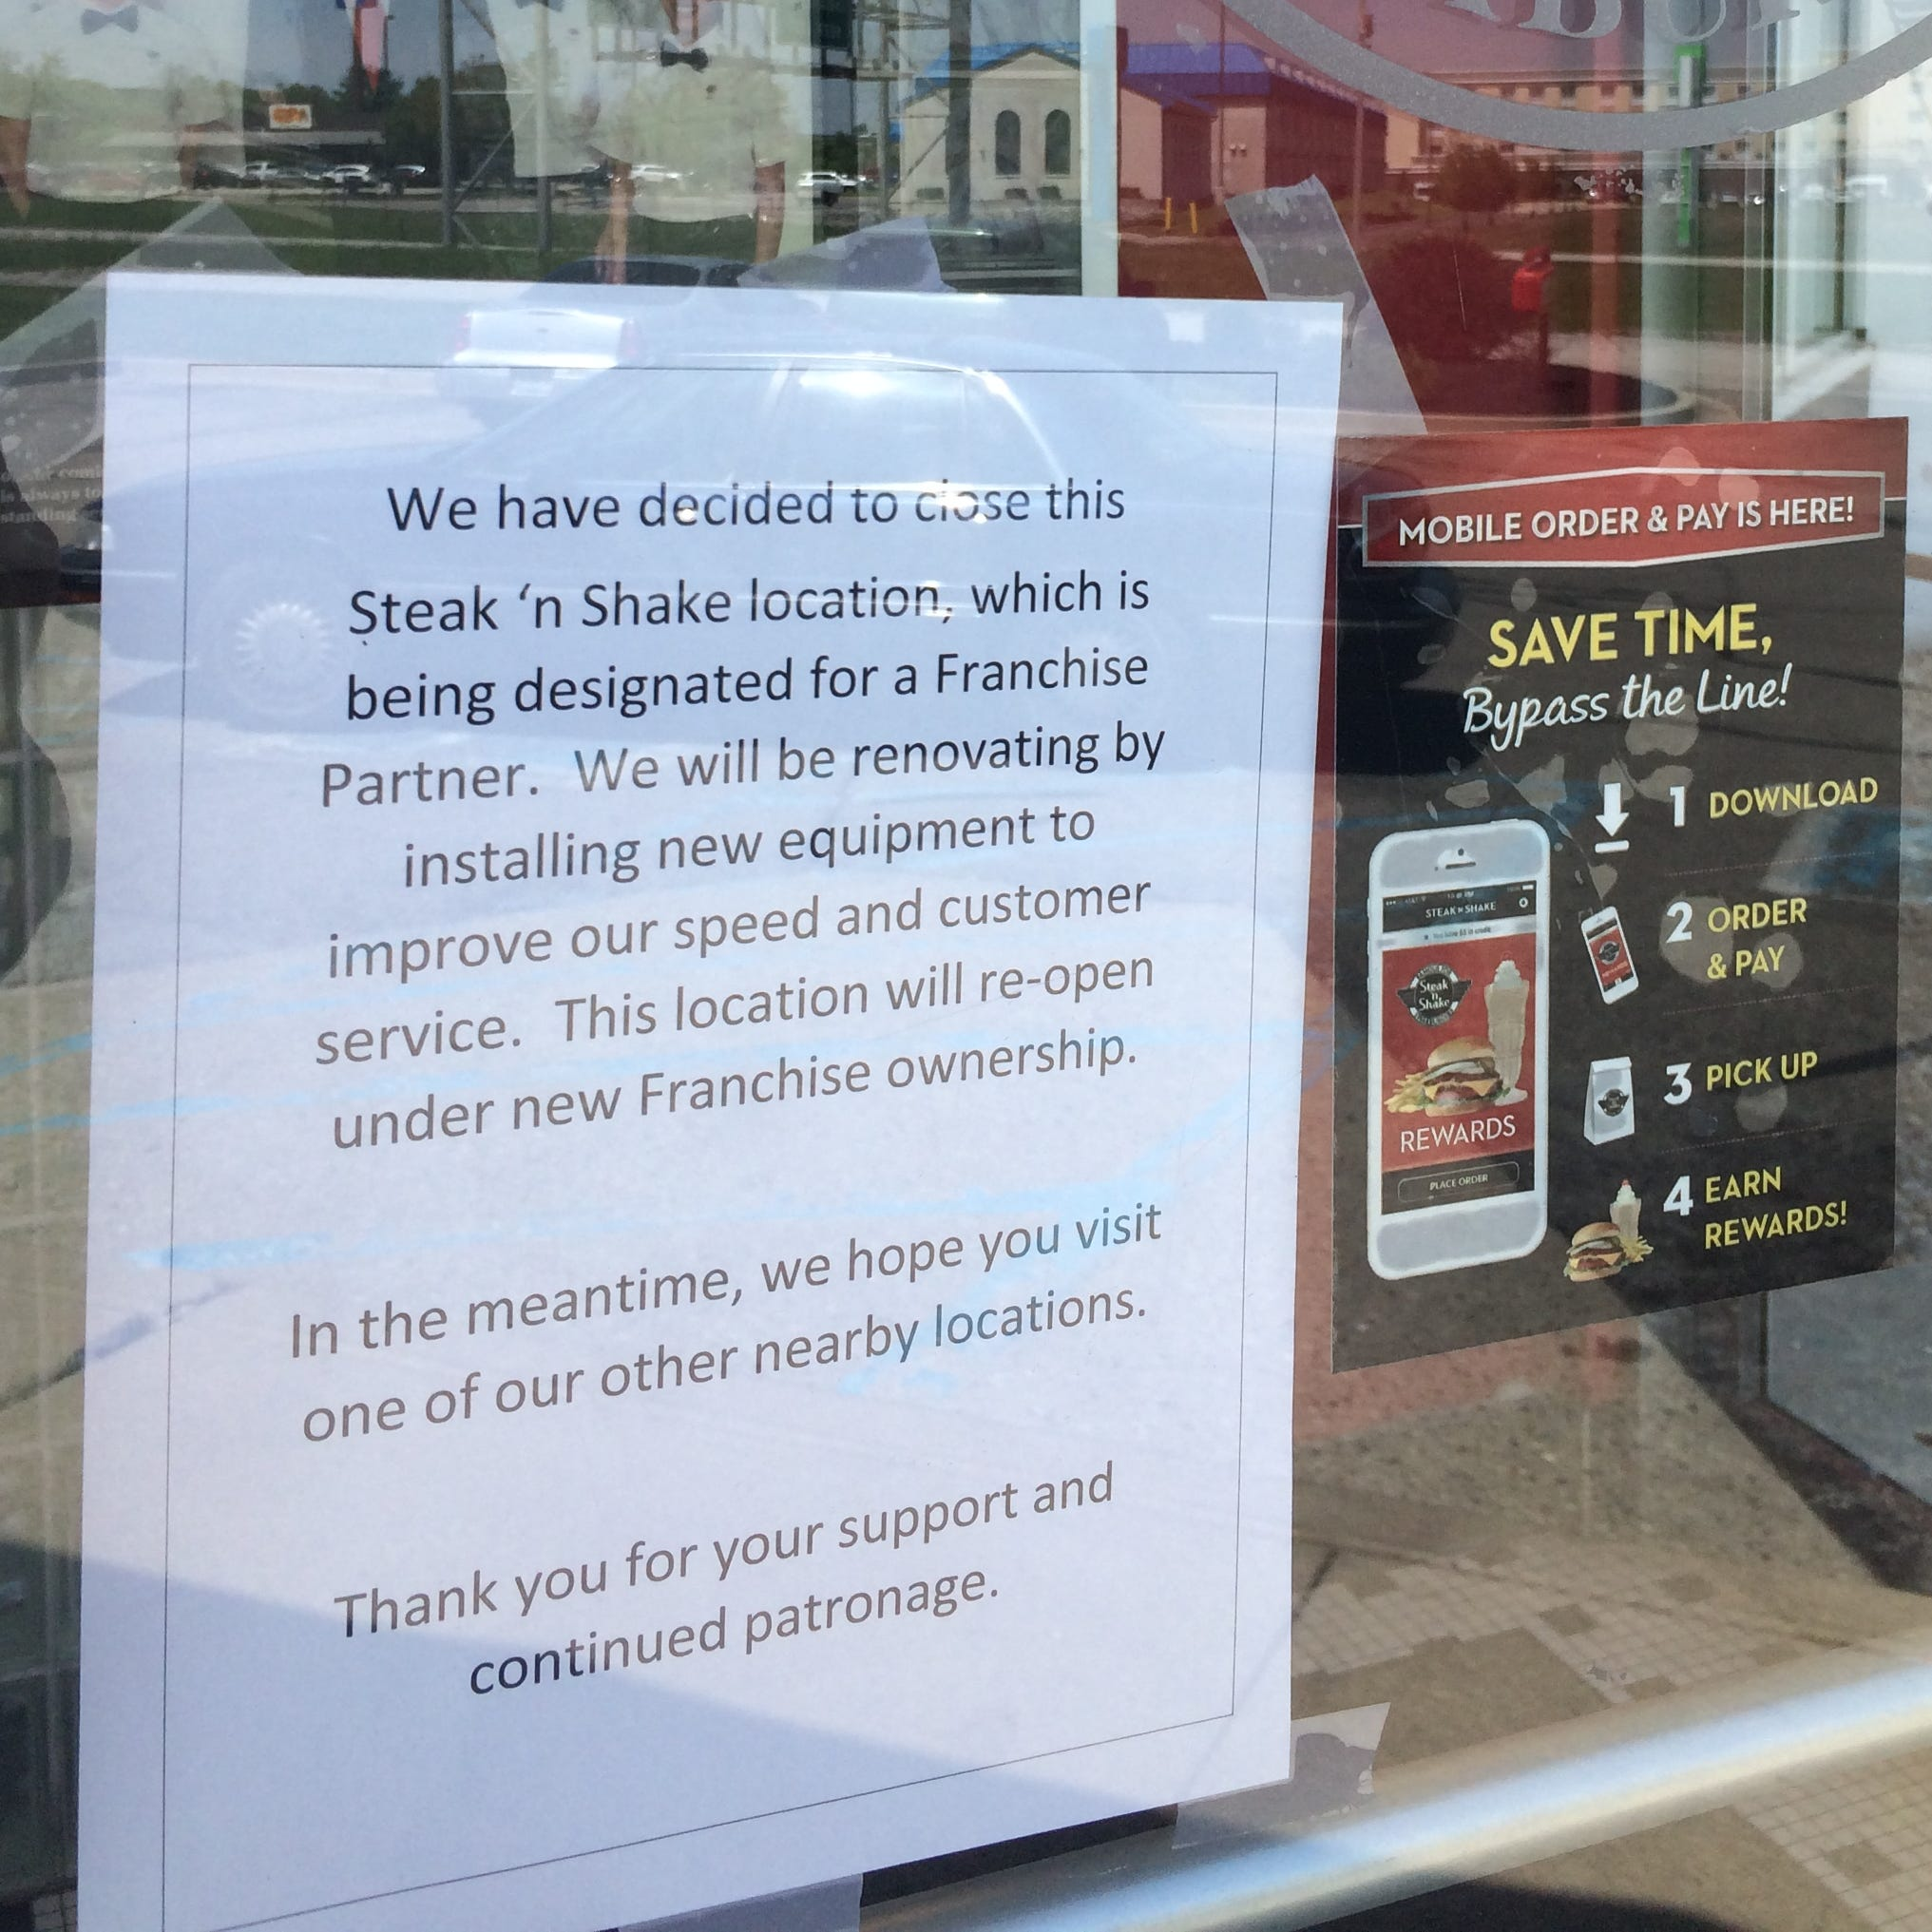 Notice: Richmond's closed Steak 'n Shake will reopen under franchisee